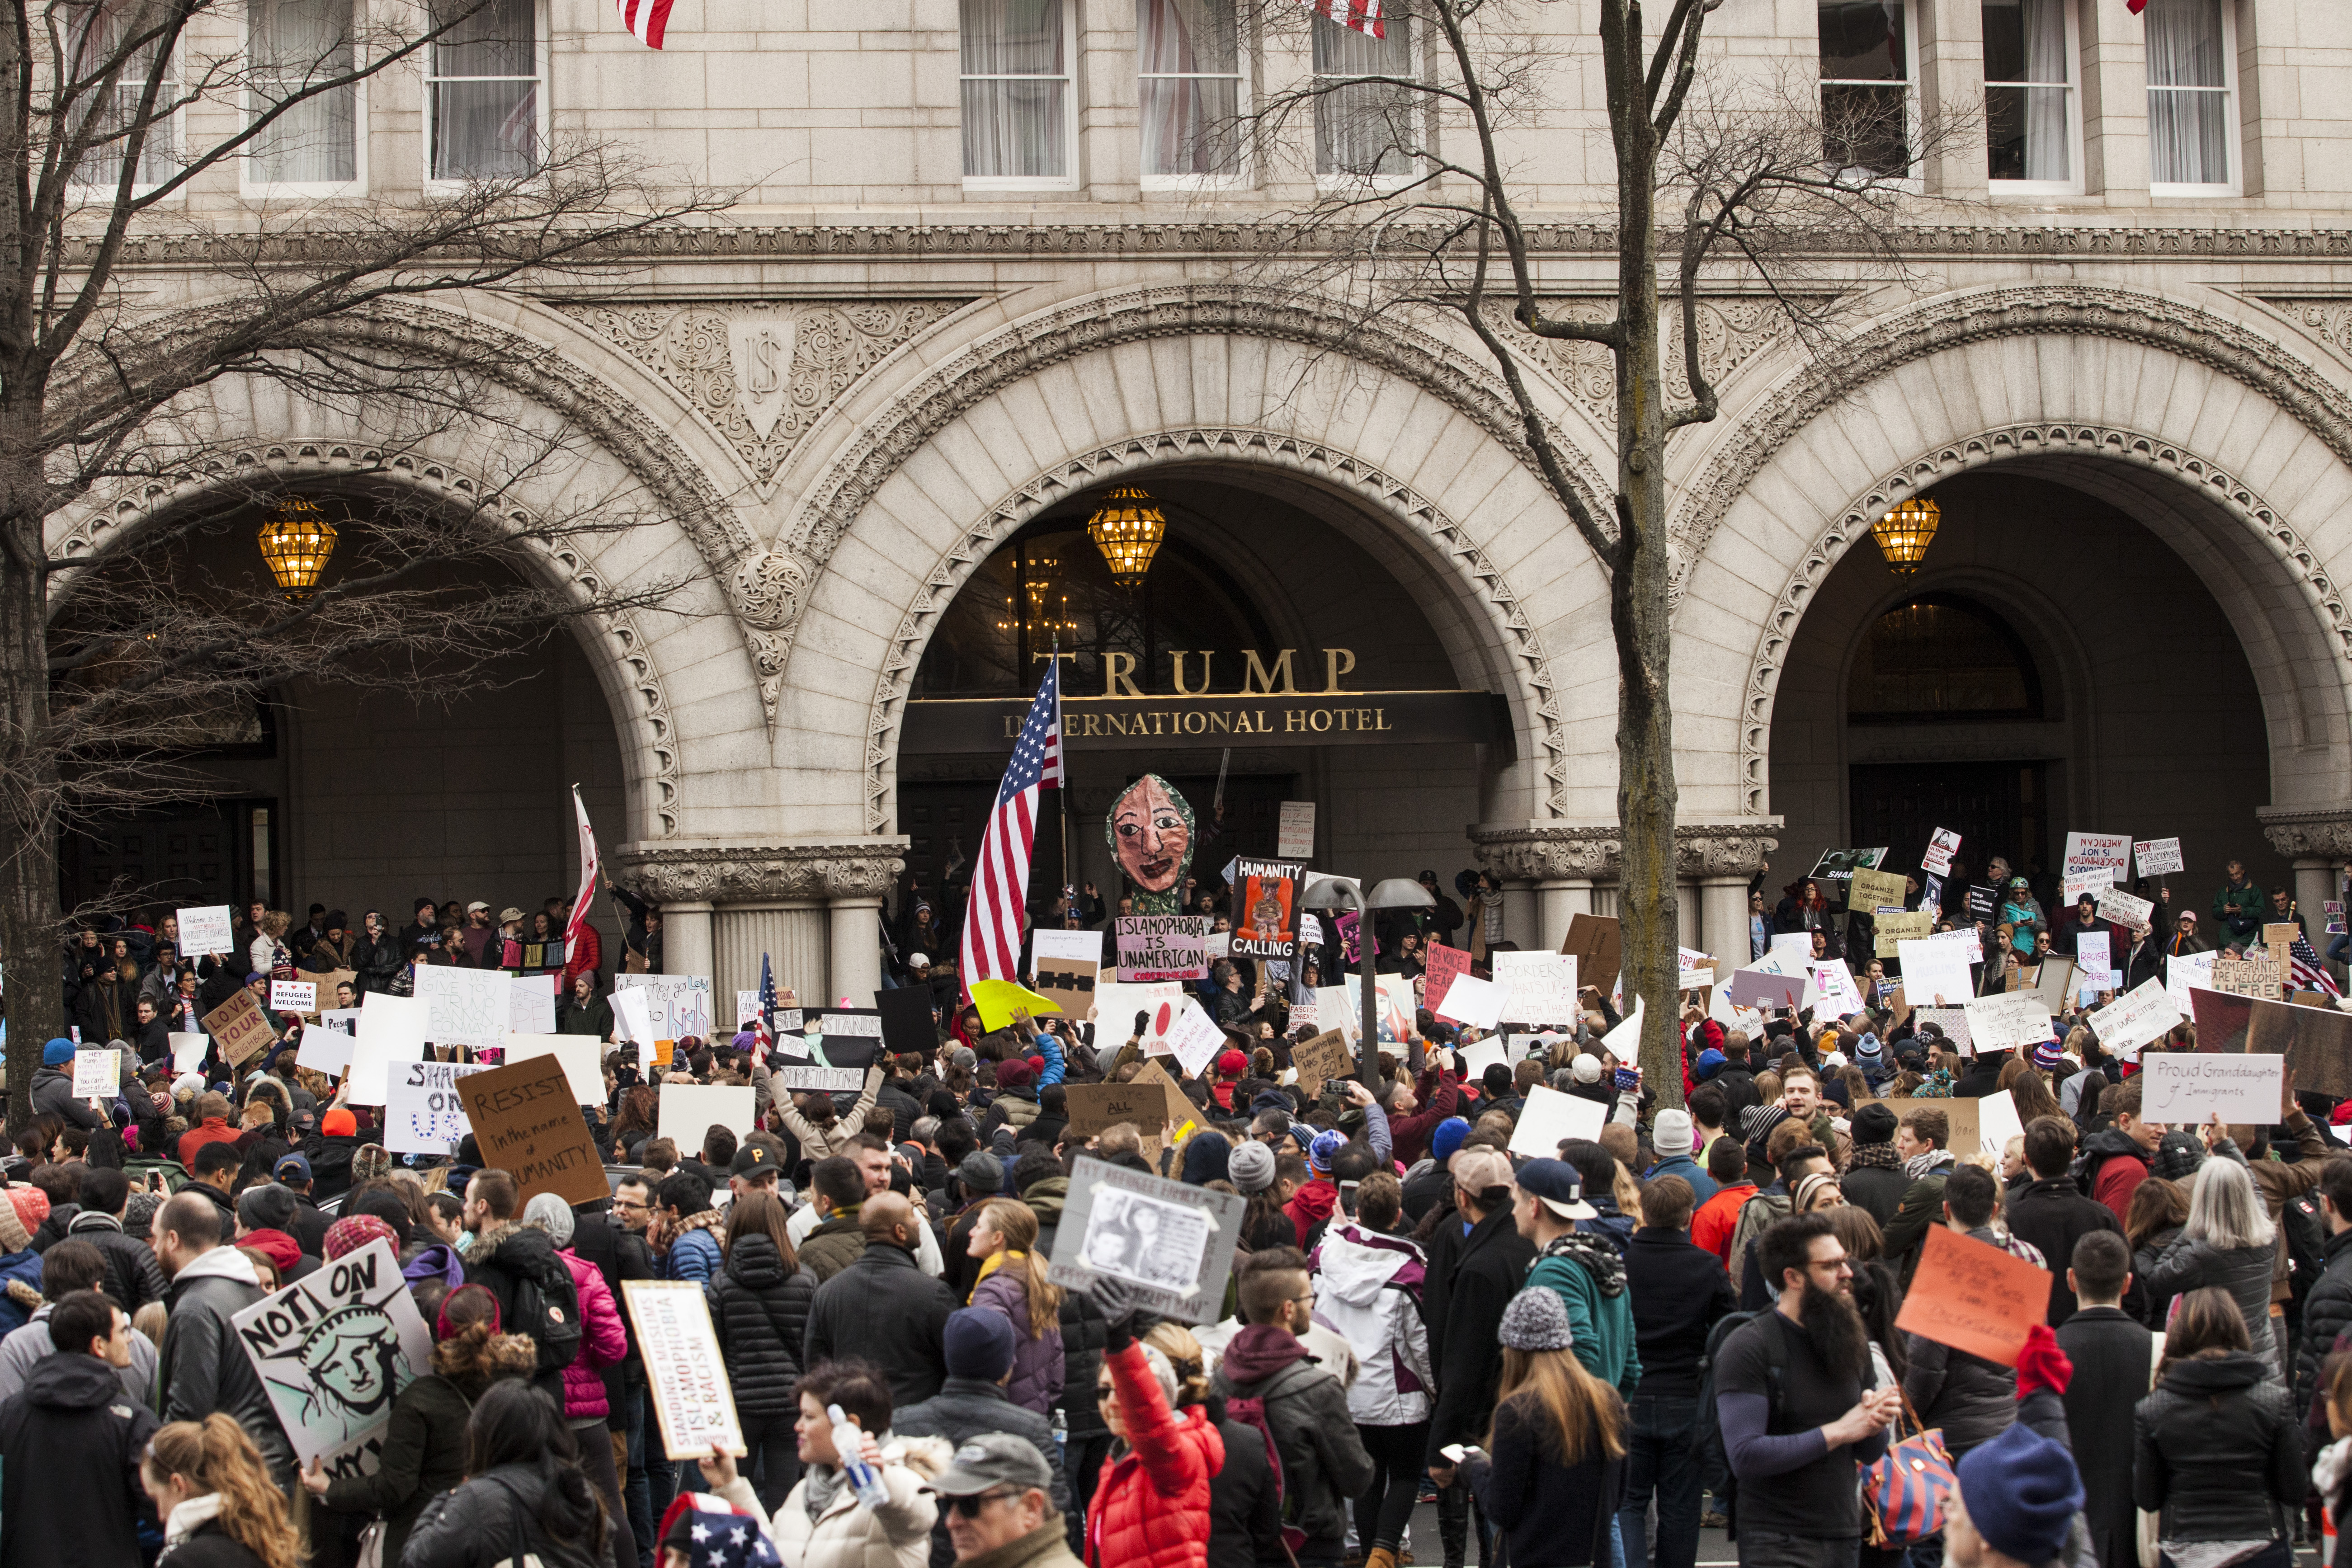 The Trump hotel in Washington, D.C., has become a magnet for protests--and bad reviews at online rating sites.